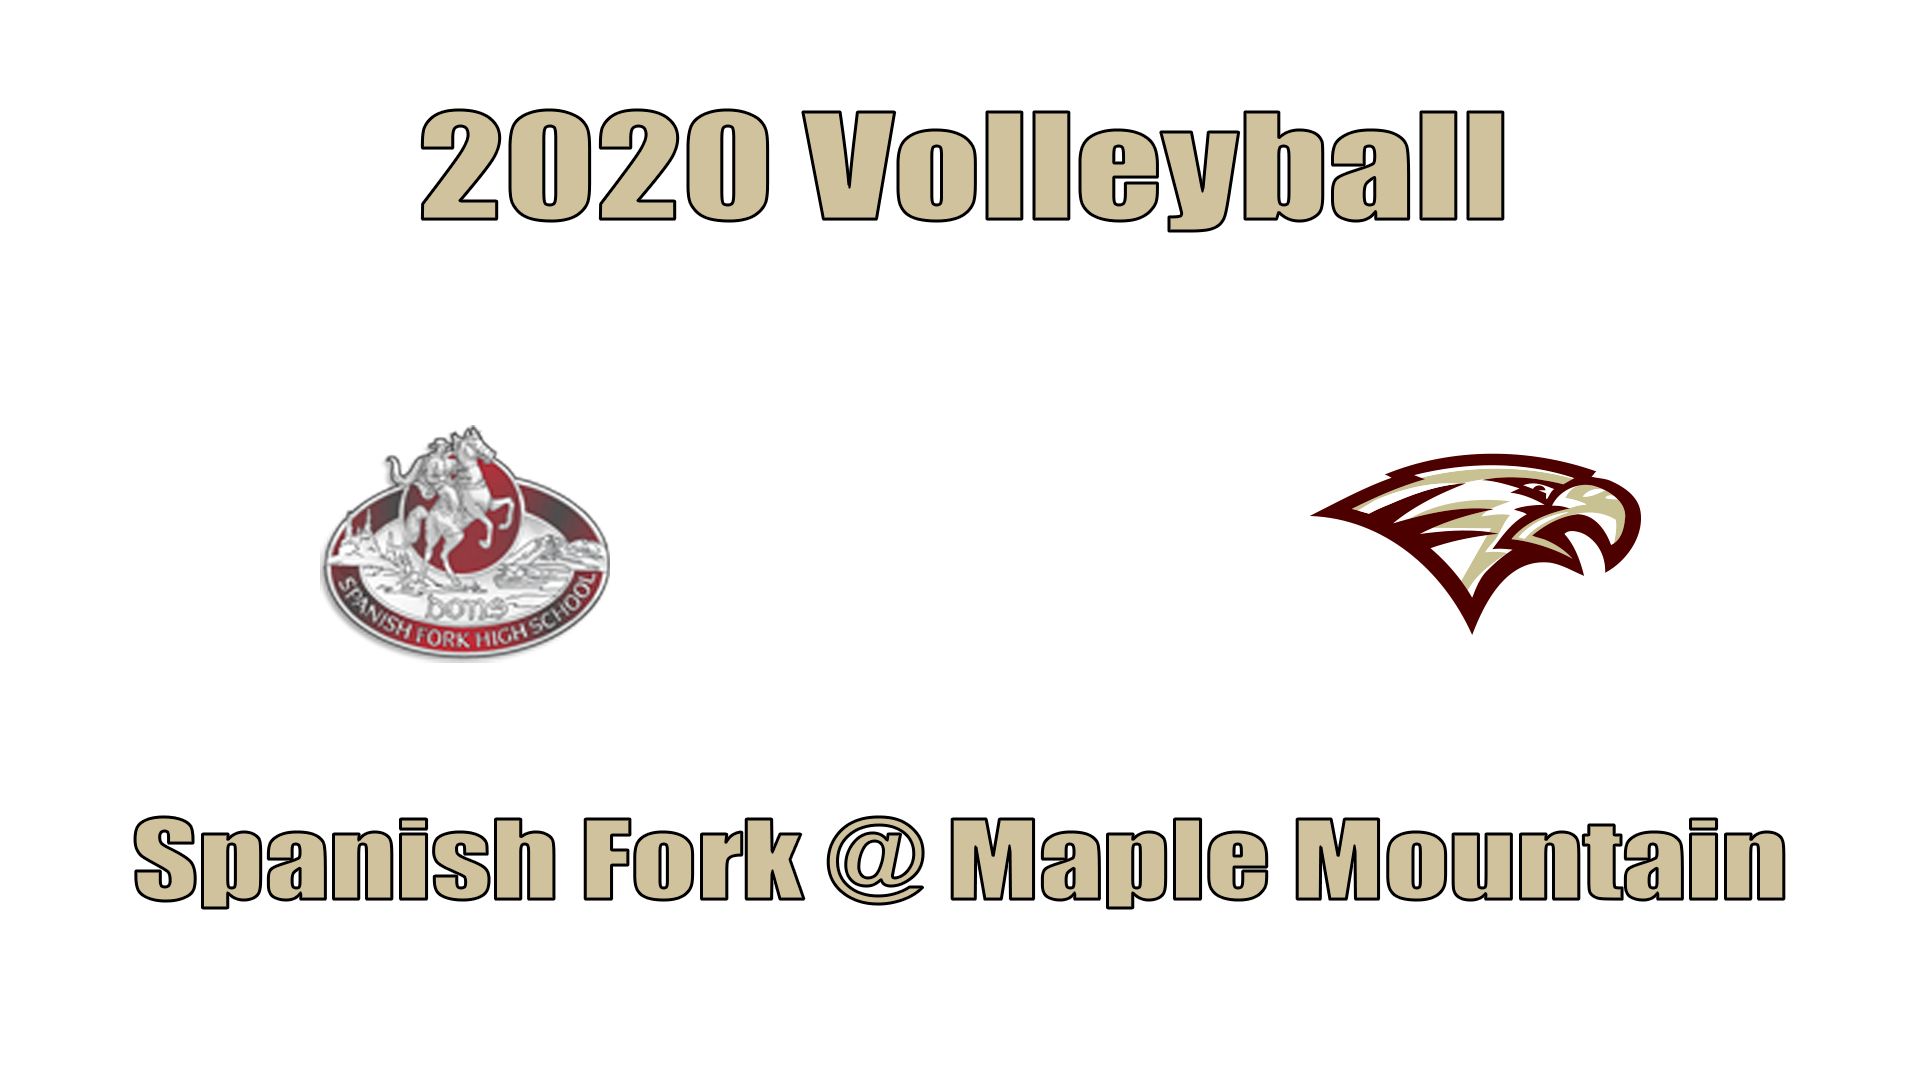 Spanish Fork at Maple Mountain